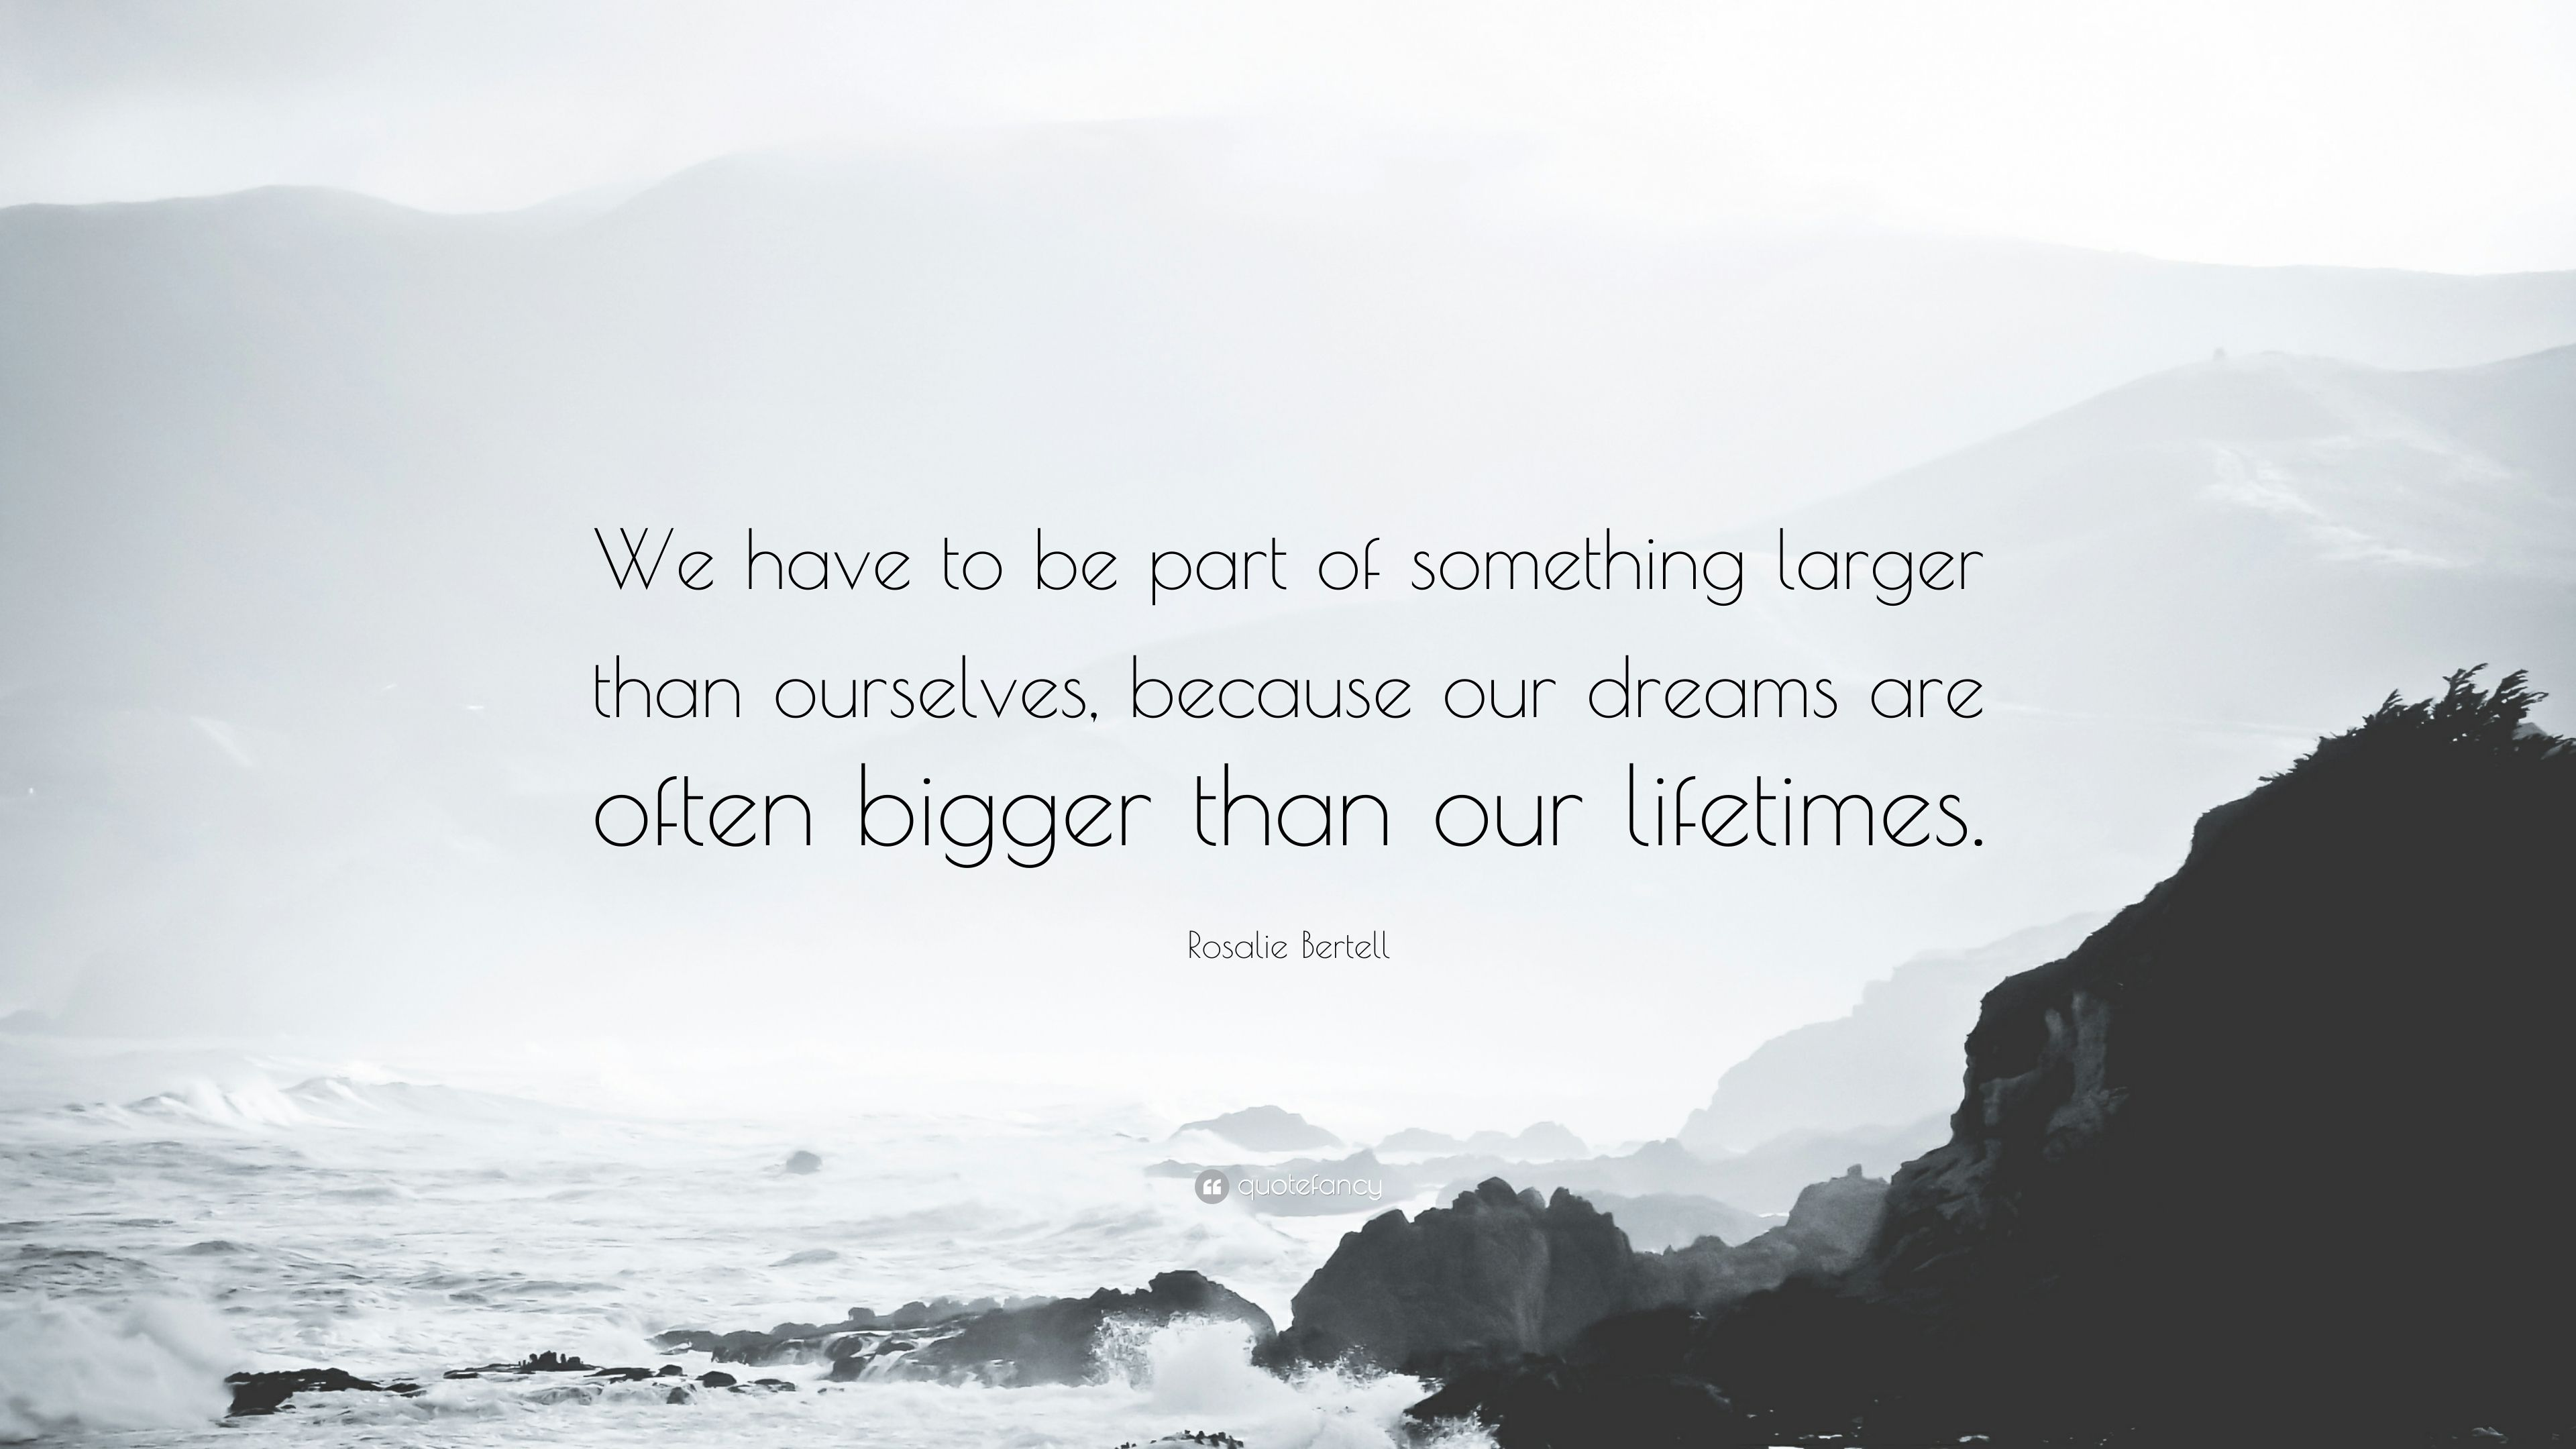 Dreams about something bigger 2